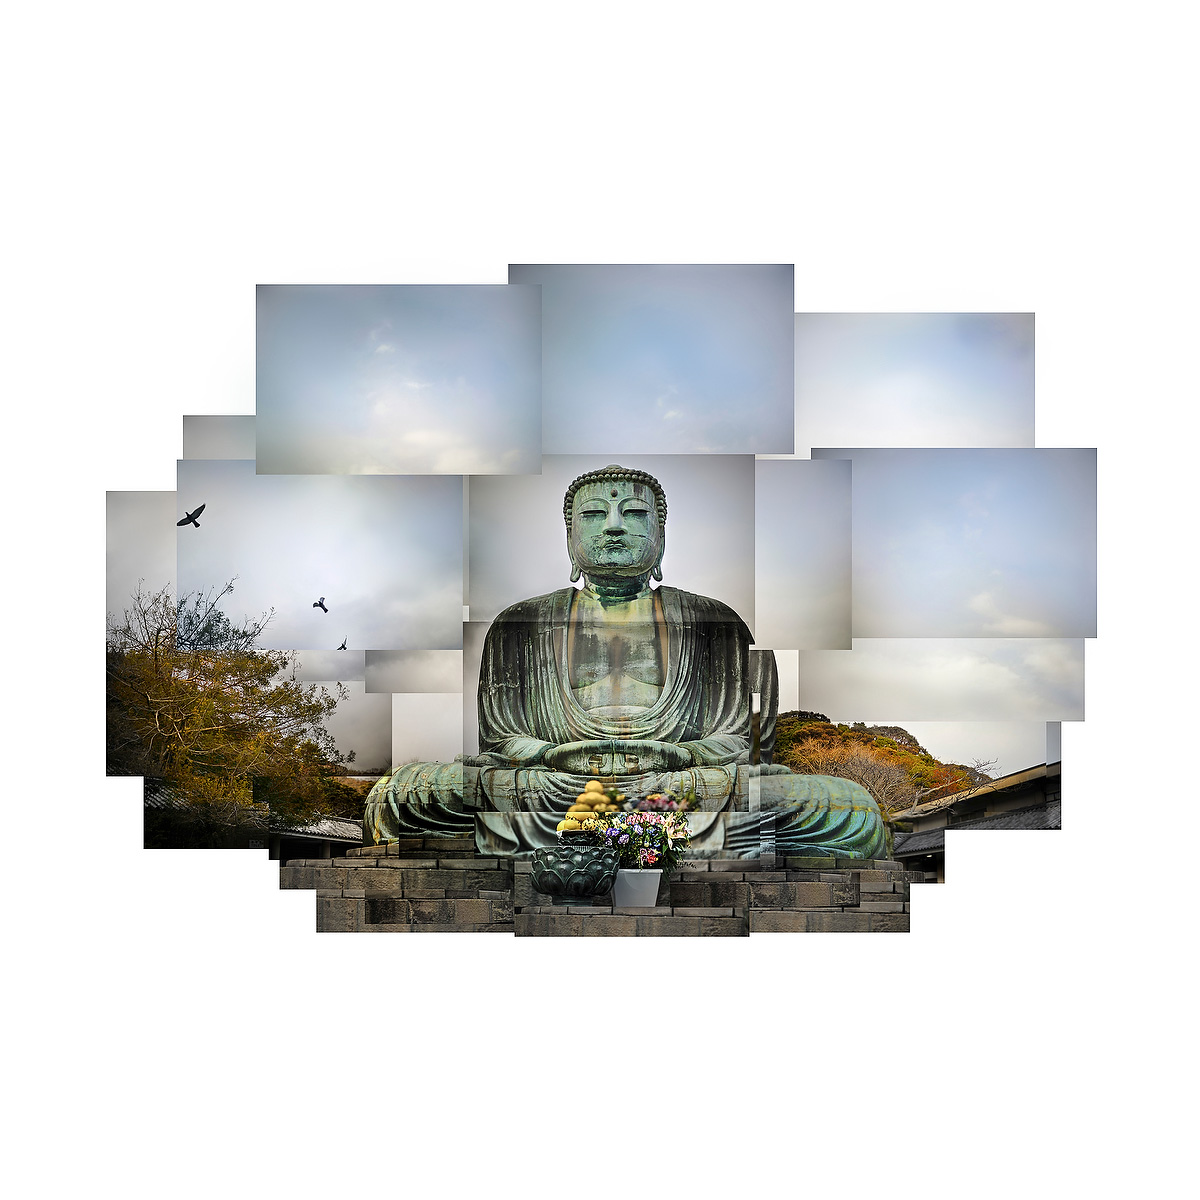 The giant Buddha statue in Kamakura, Japan is rendered in a composite image by using multiple digital files of individual pictures which were assembled in Photoshop.